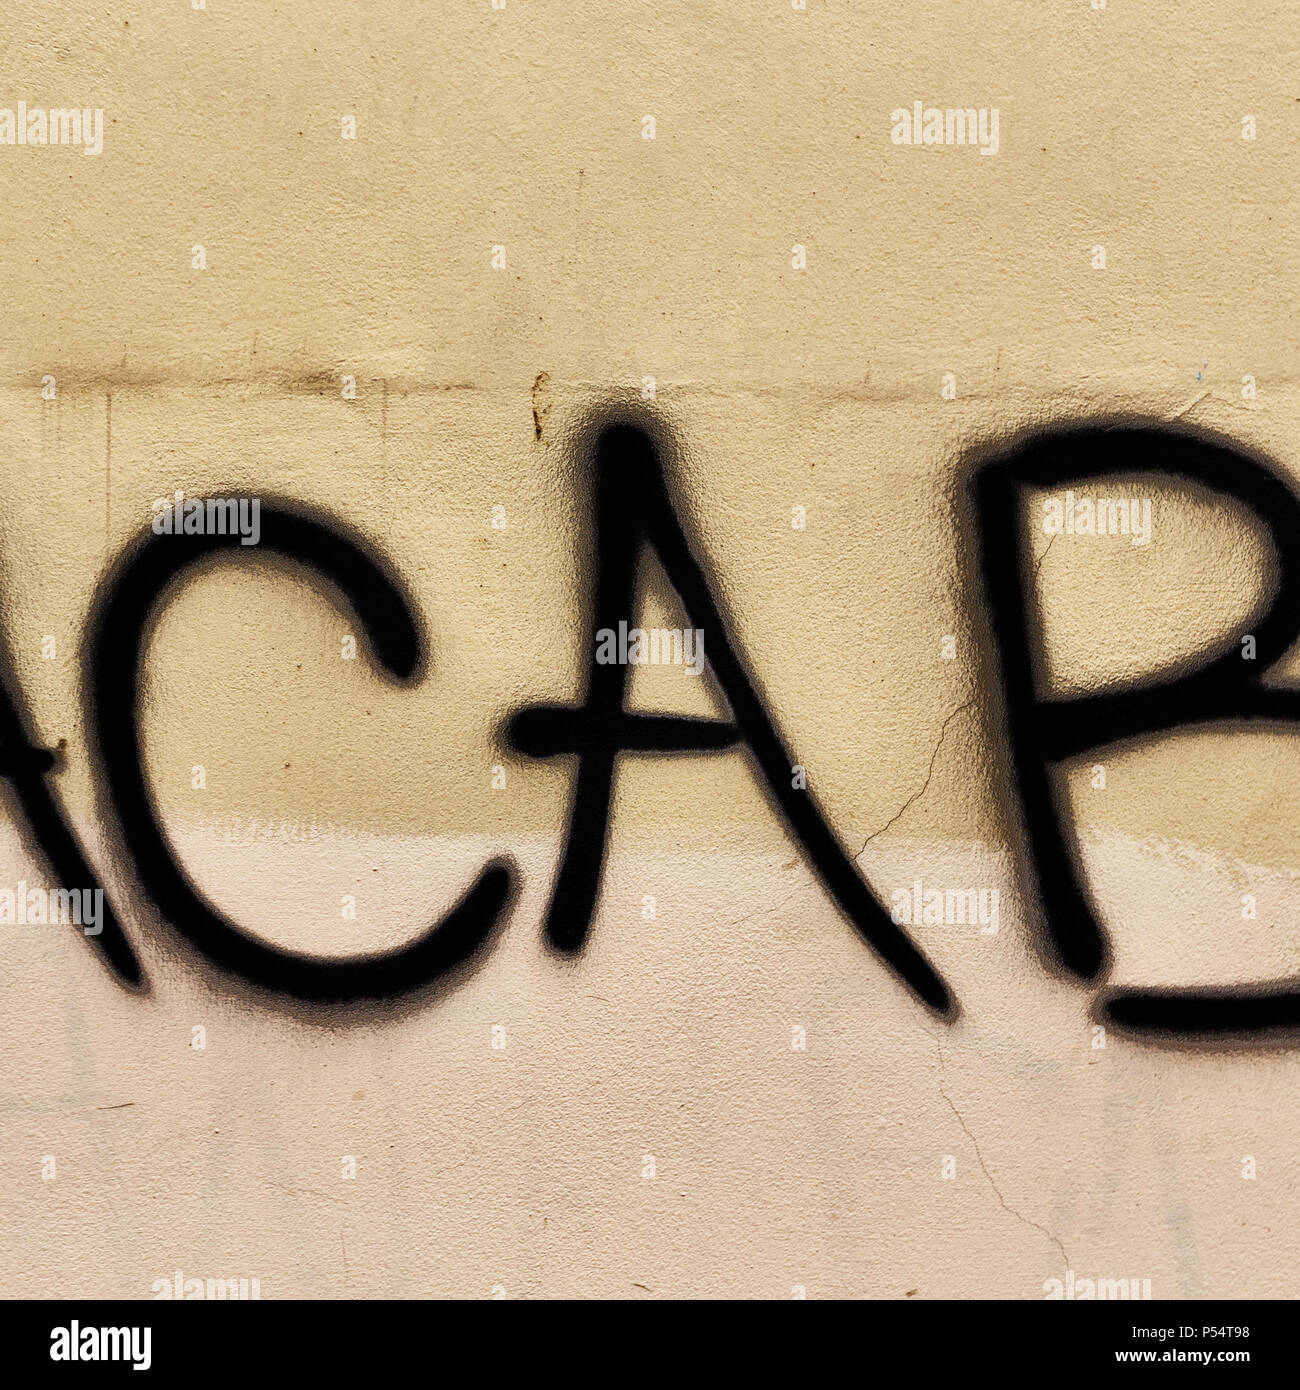 in the old wall the painted words of acab like concept of violence ...